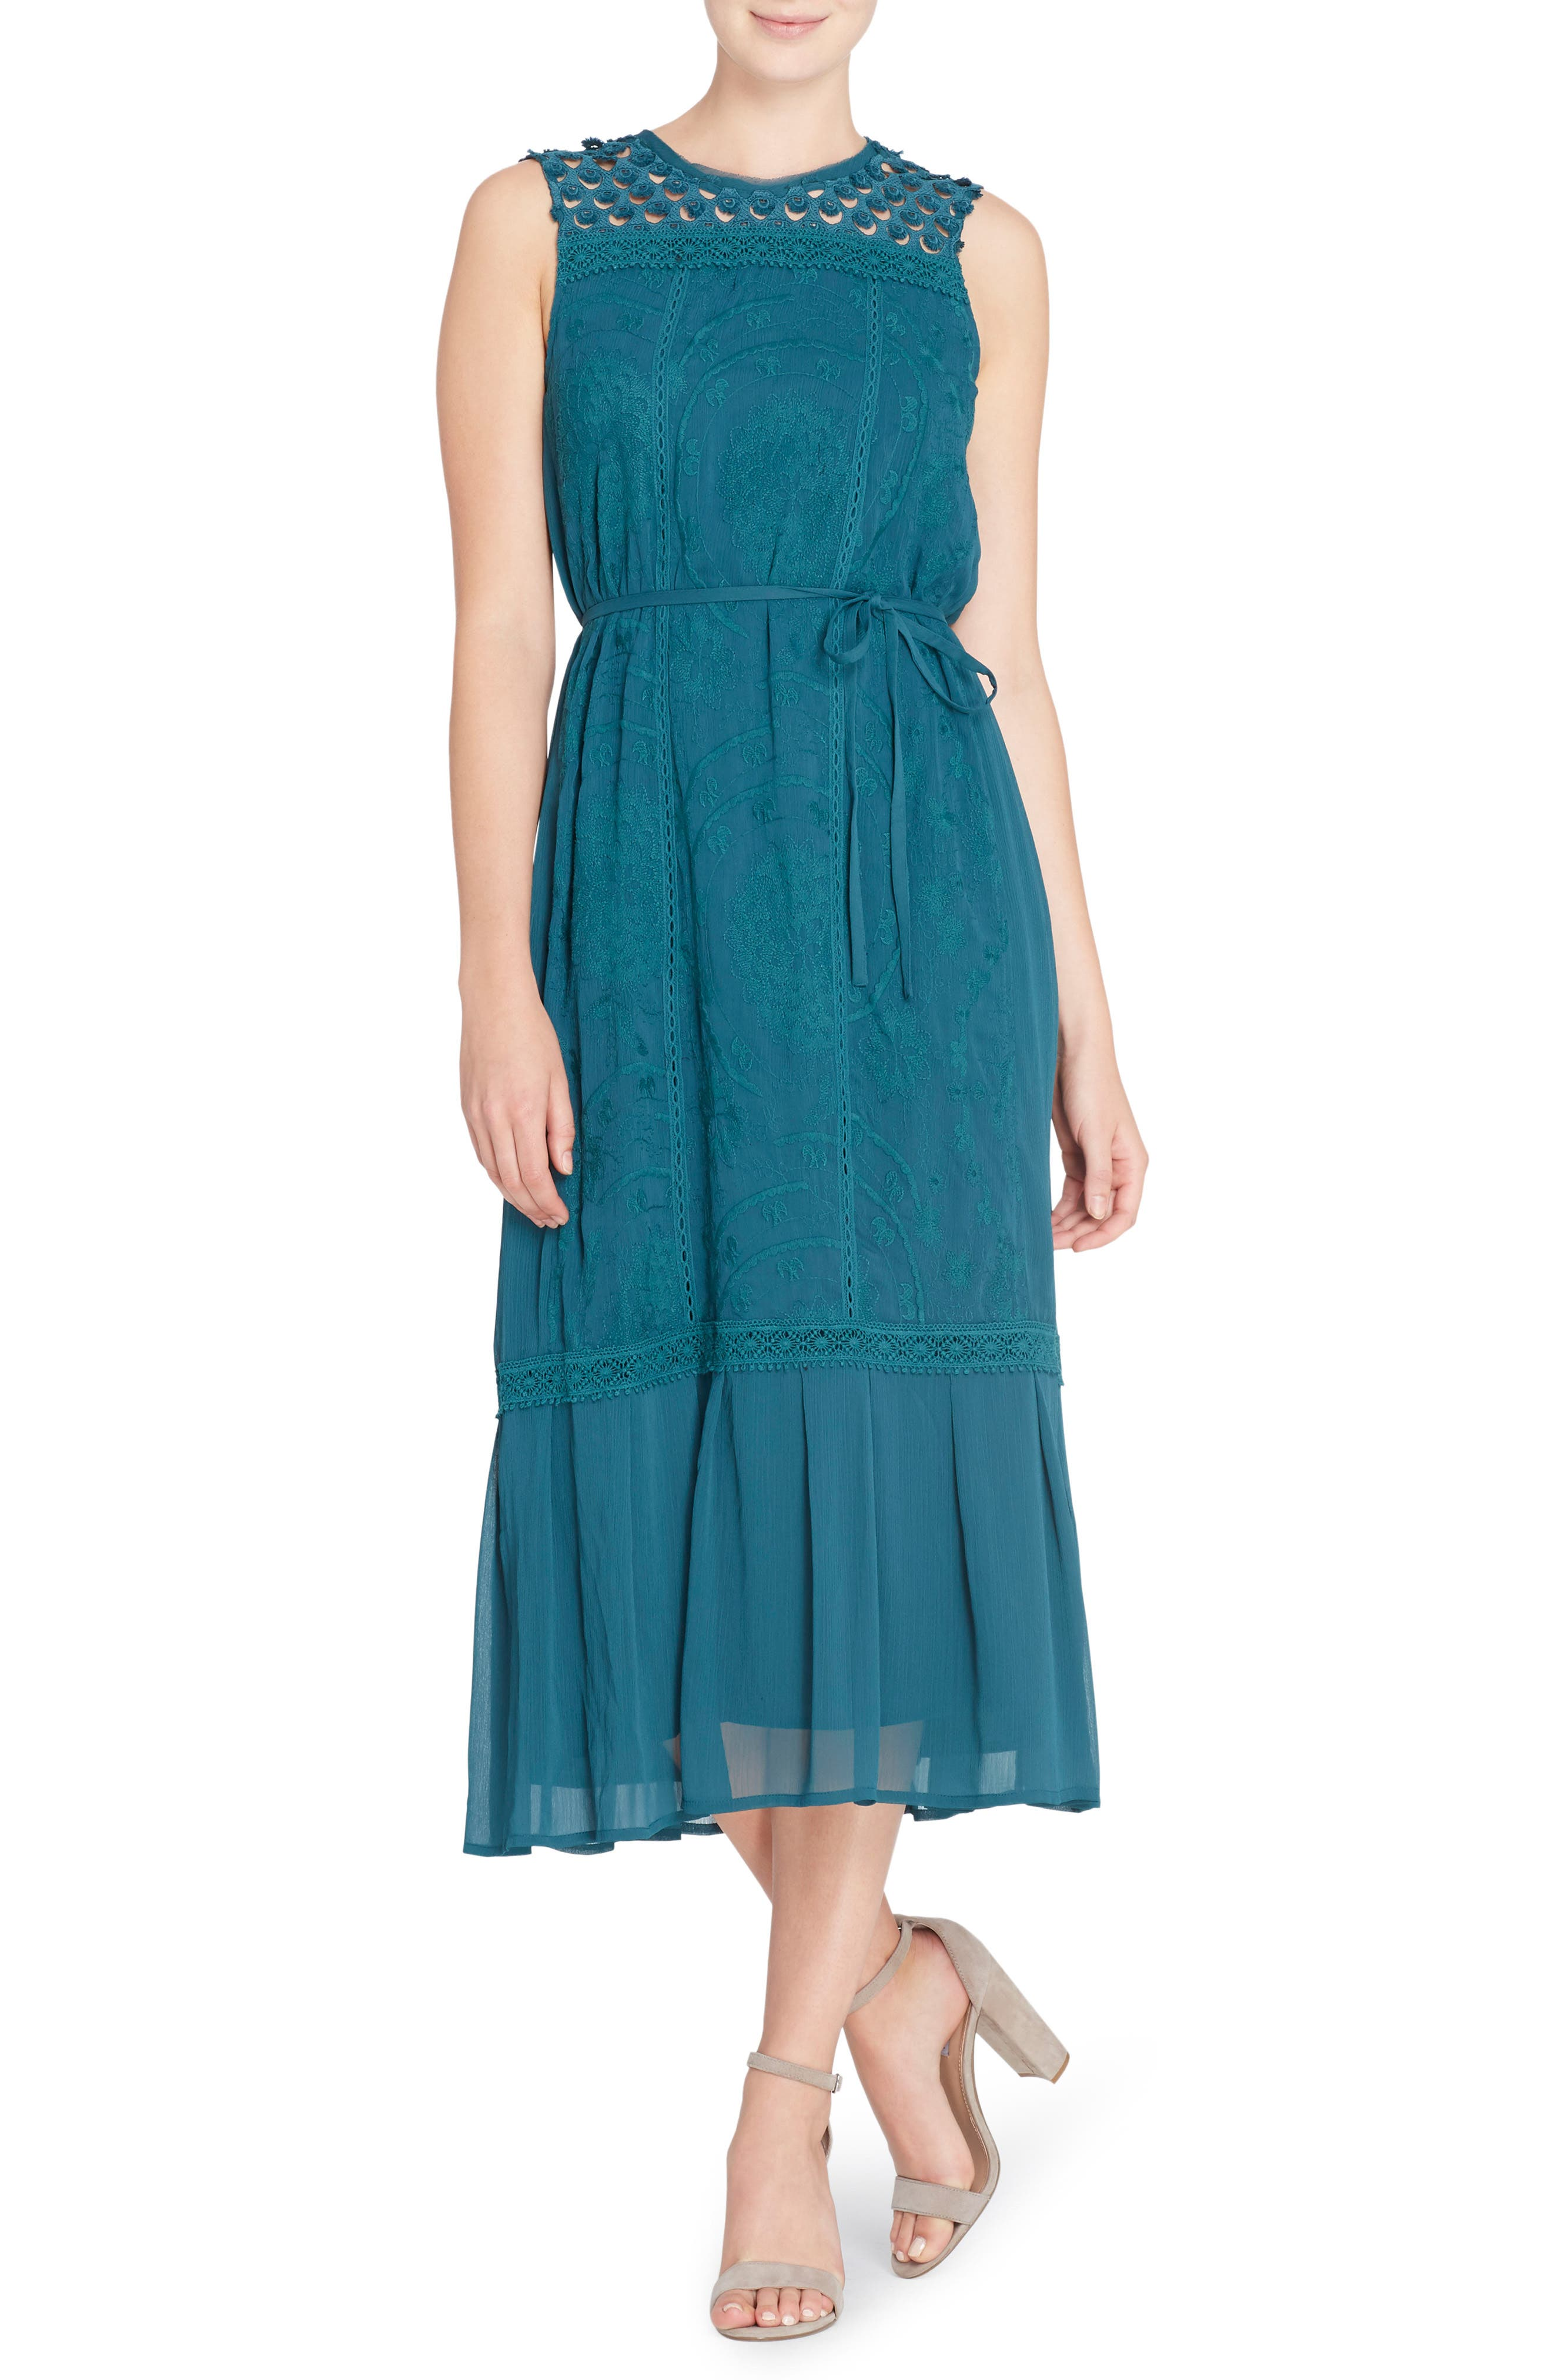 Ellen Embroidered Midi Dress,                             Main thumbnail 1, color,                             347